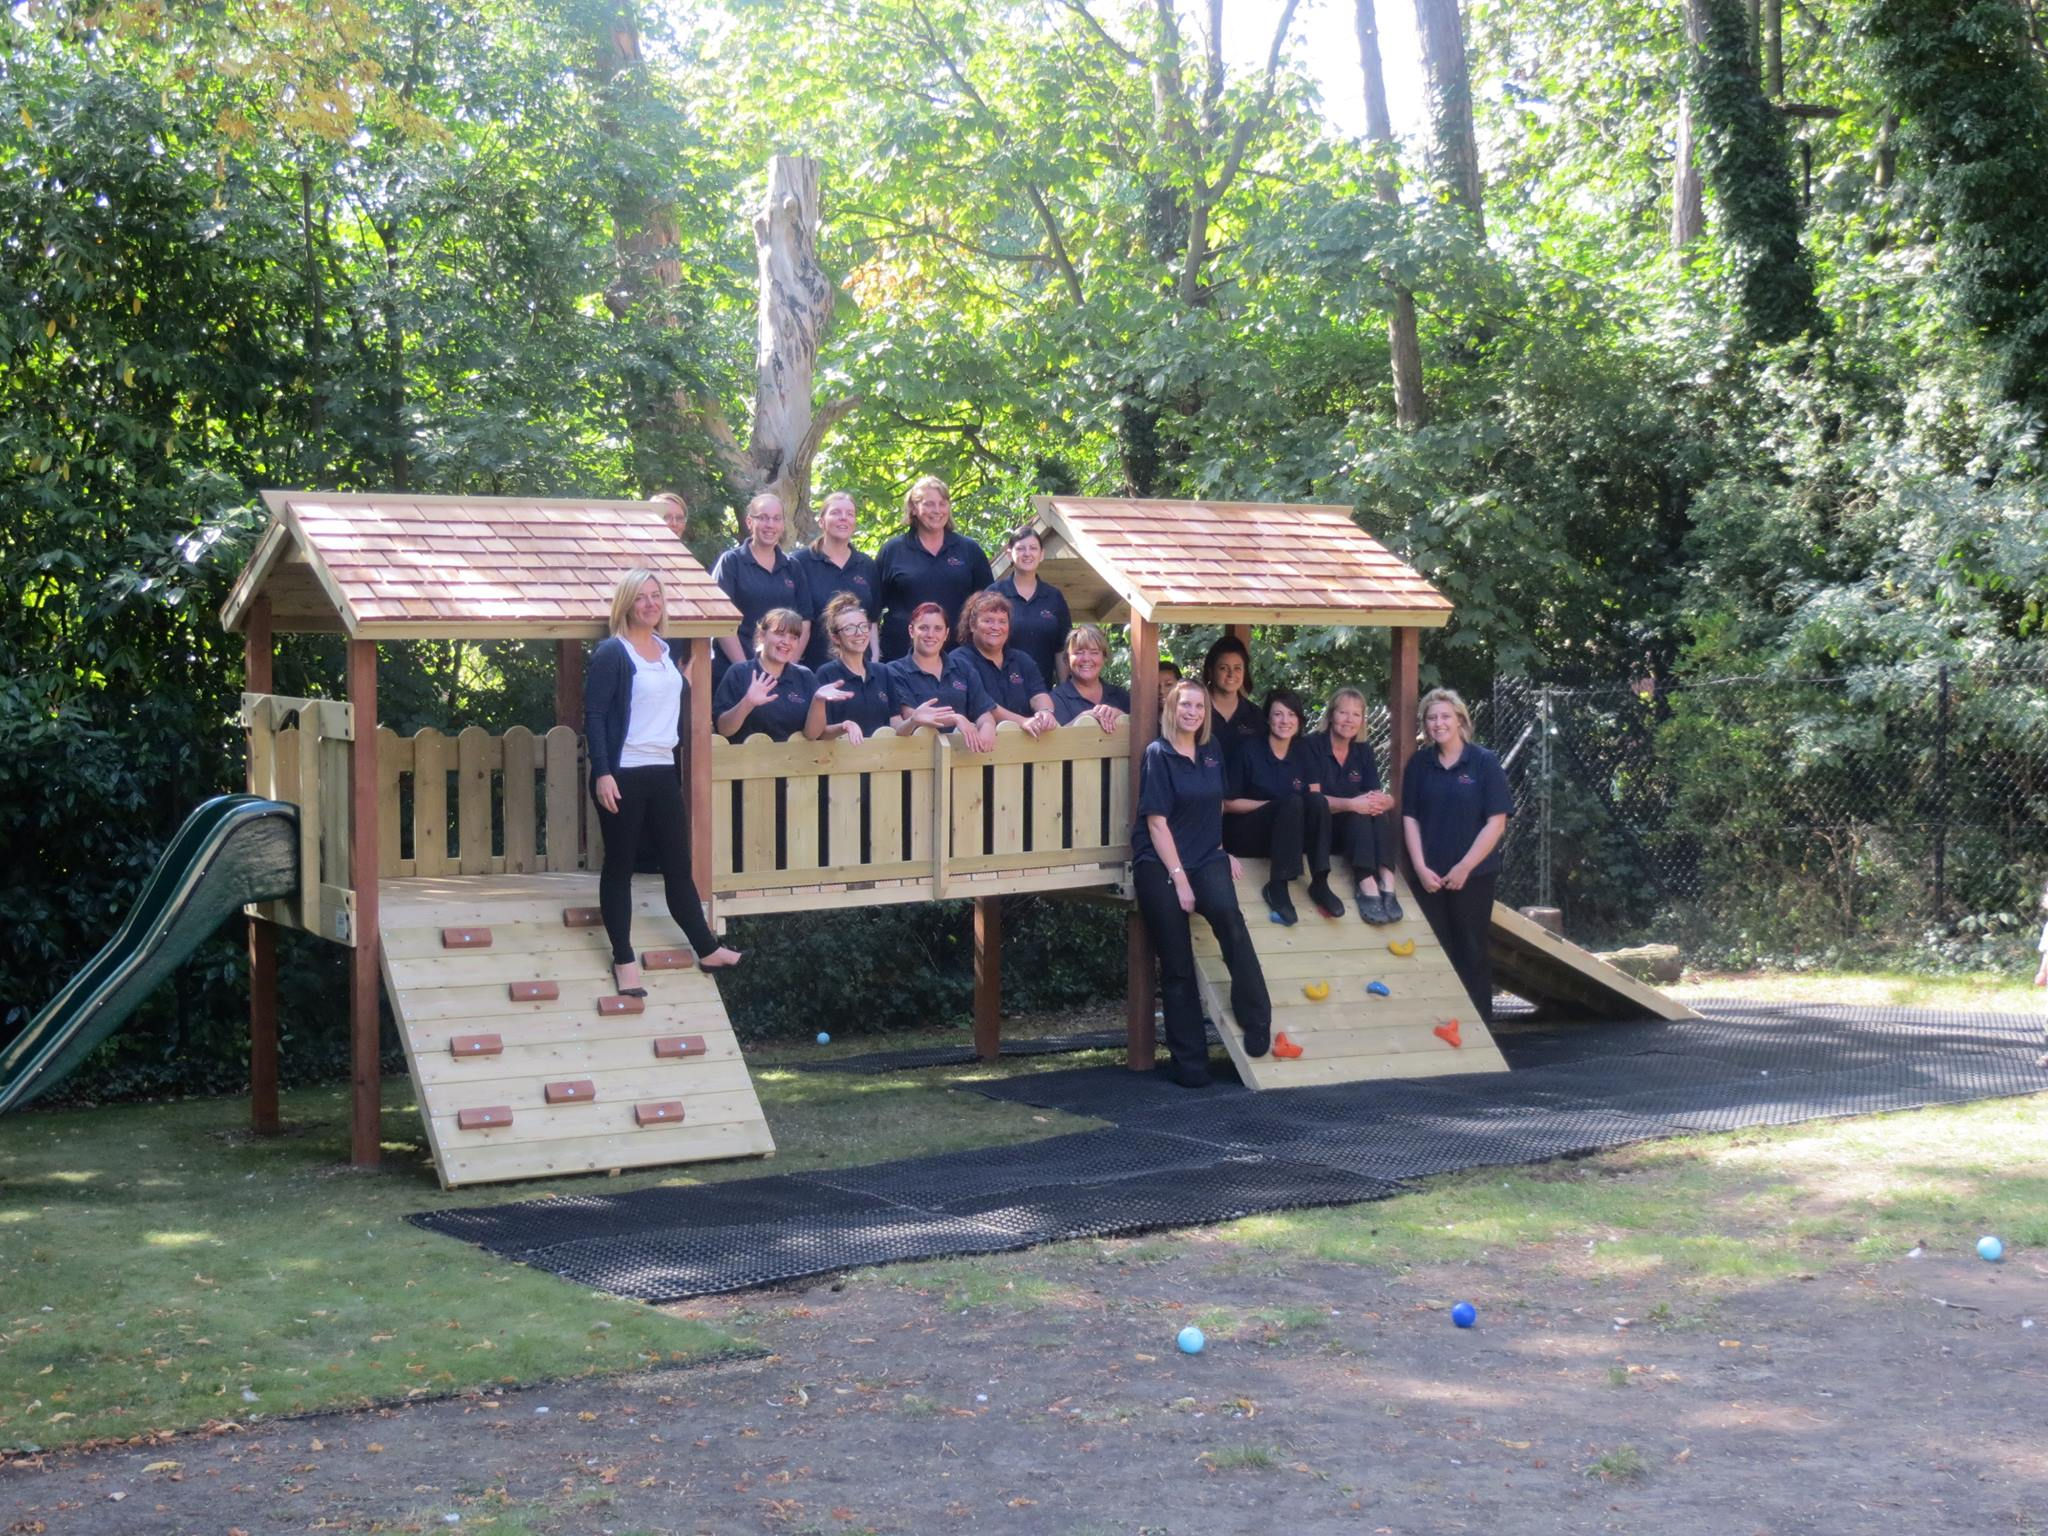 staff at play steps, managed by Jo Morris